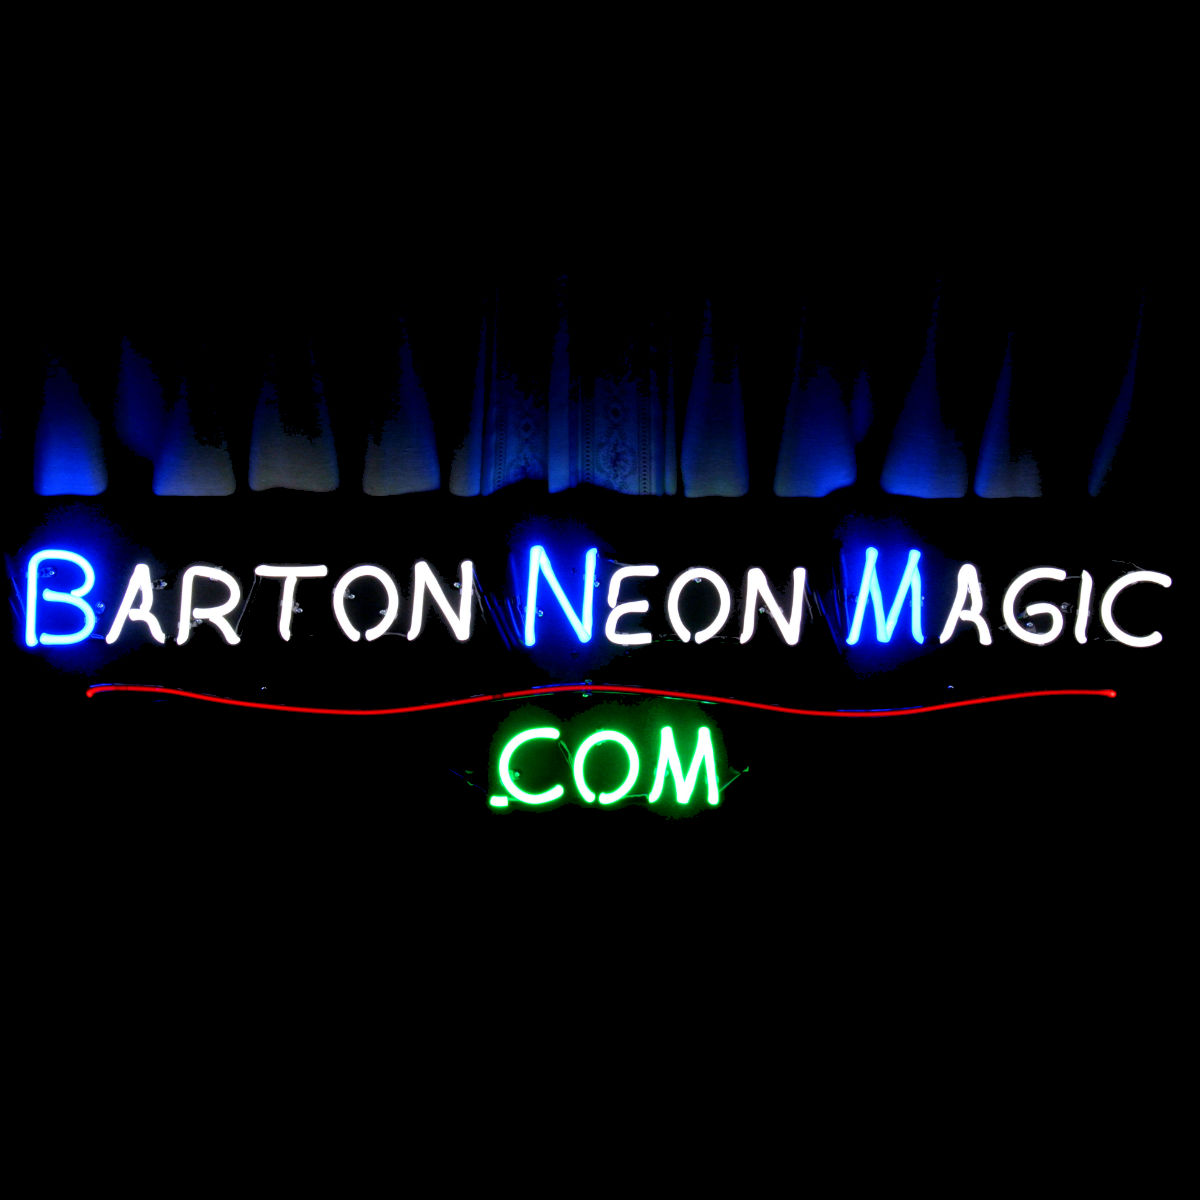 Grab New Customers for your business - CUSTOM COMMERCIAL NEON SIGNS by John Barton - BartonNeonMagic.com